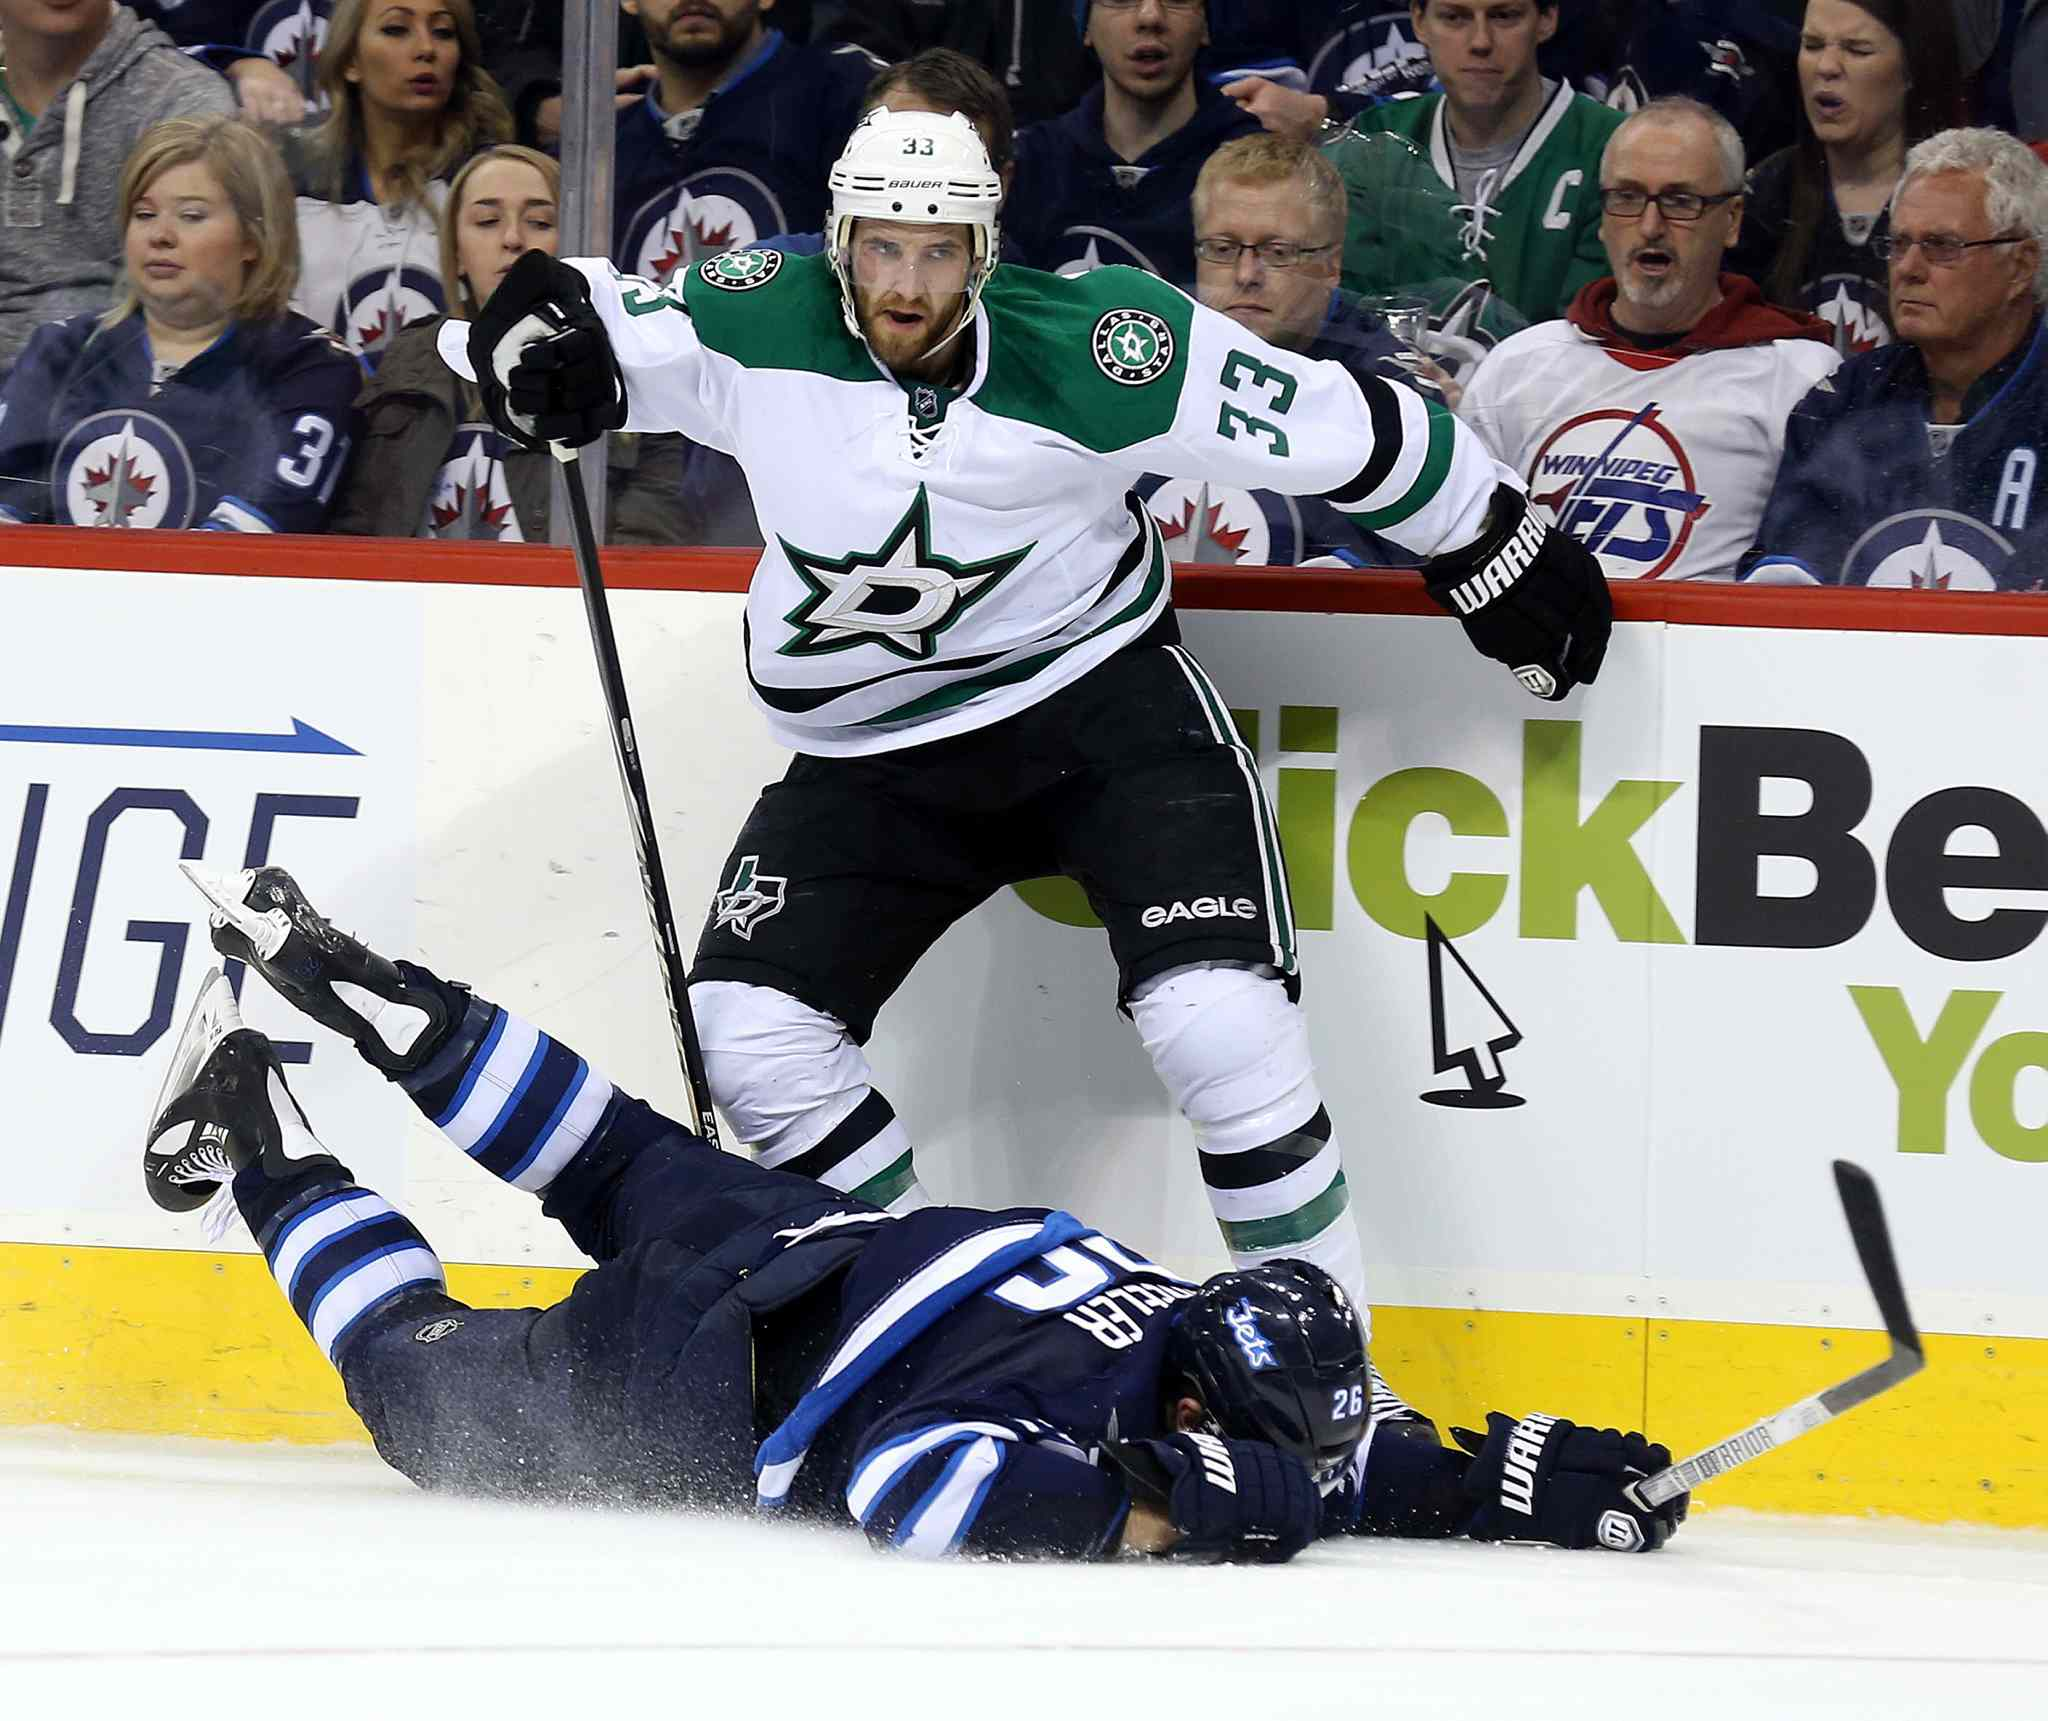 Winnipeg Jets forward Blake Wheeler hits the ice after trying to get past the Dallas Stars' Alex Goligoski during the second period.